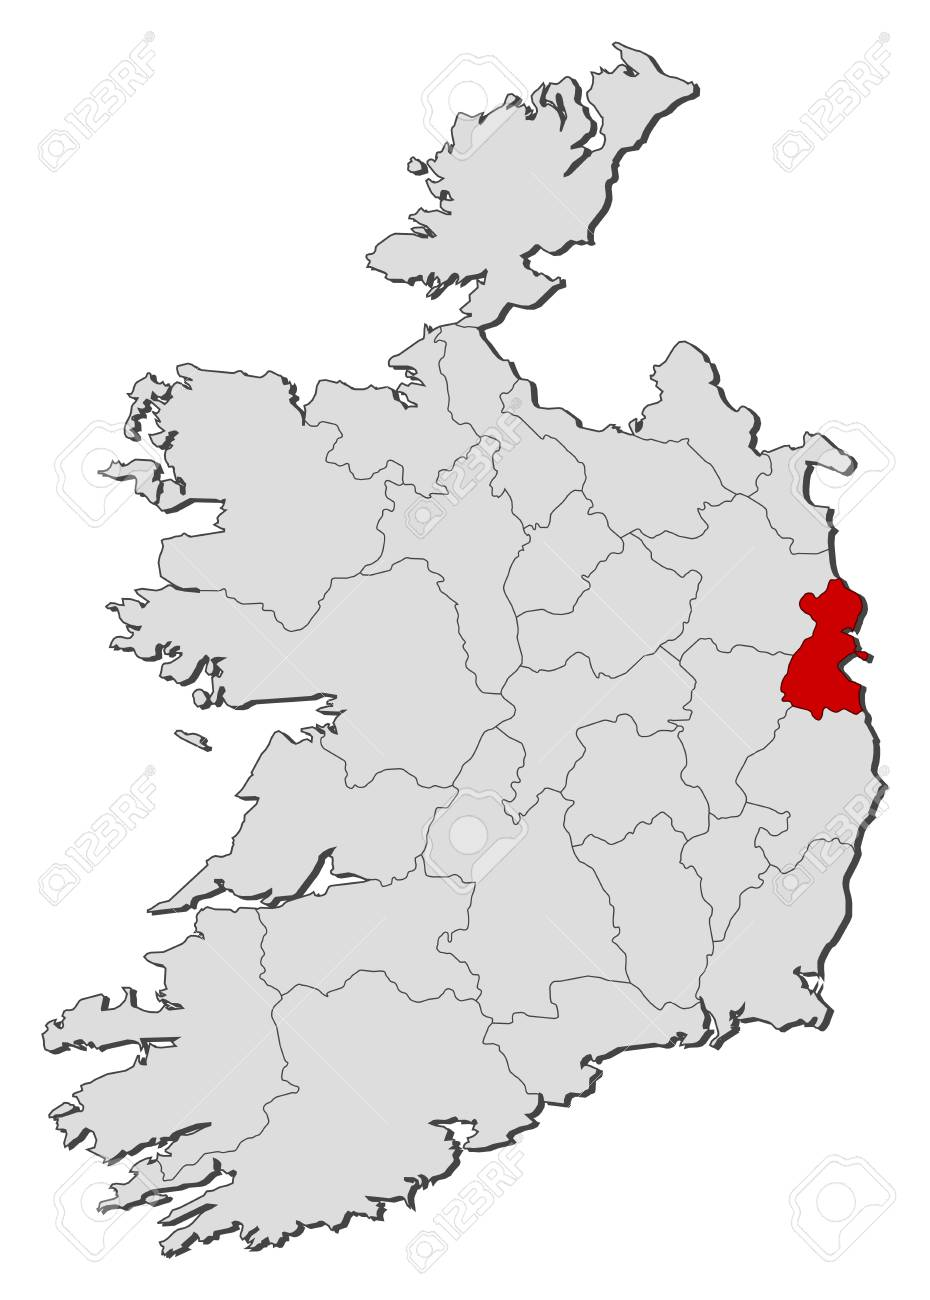 Dublin On Map Of Ireland.Map Of Ireland With The Provinces Dublin Is Highlighted